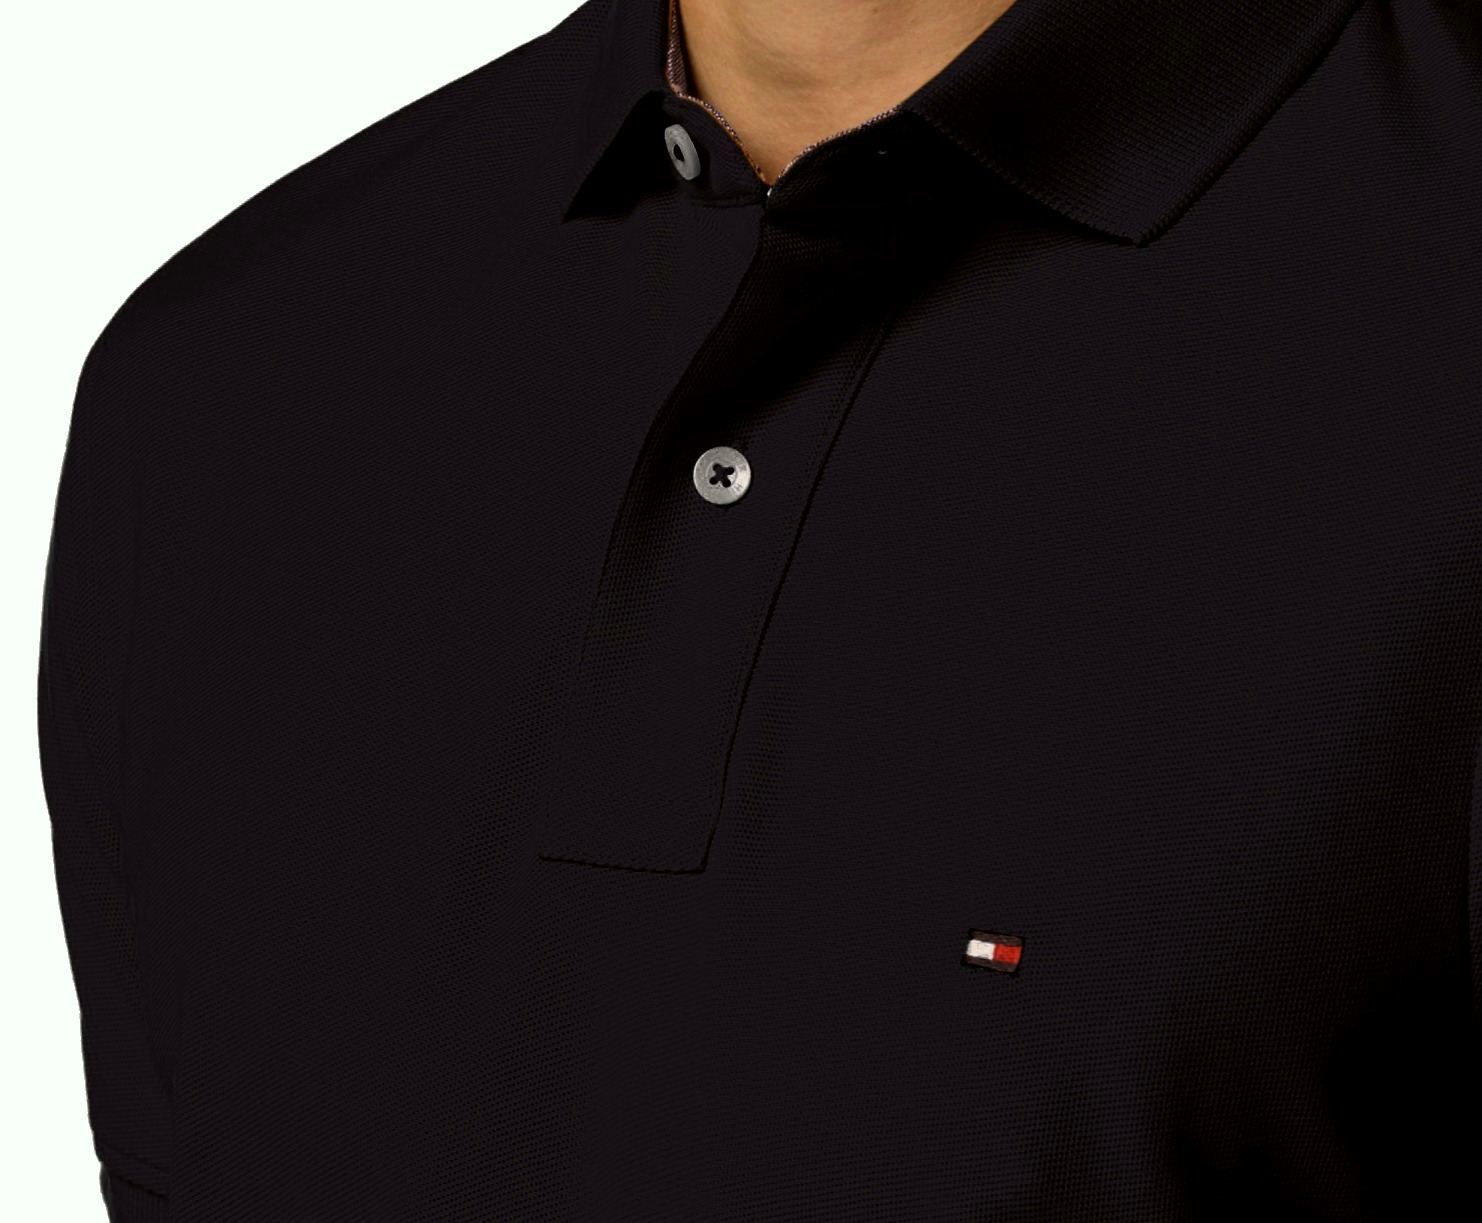 Tommy-Hilfiger-NEW-Custom-Fit-Men-039-s-Solid-Short-Sleeve-Pique-Polo-Shirt thumbnail 4